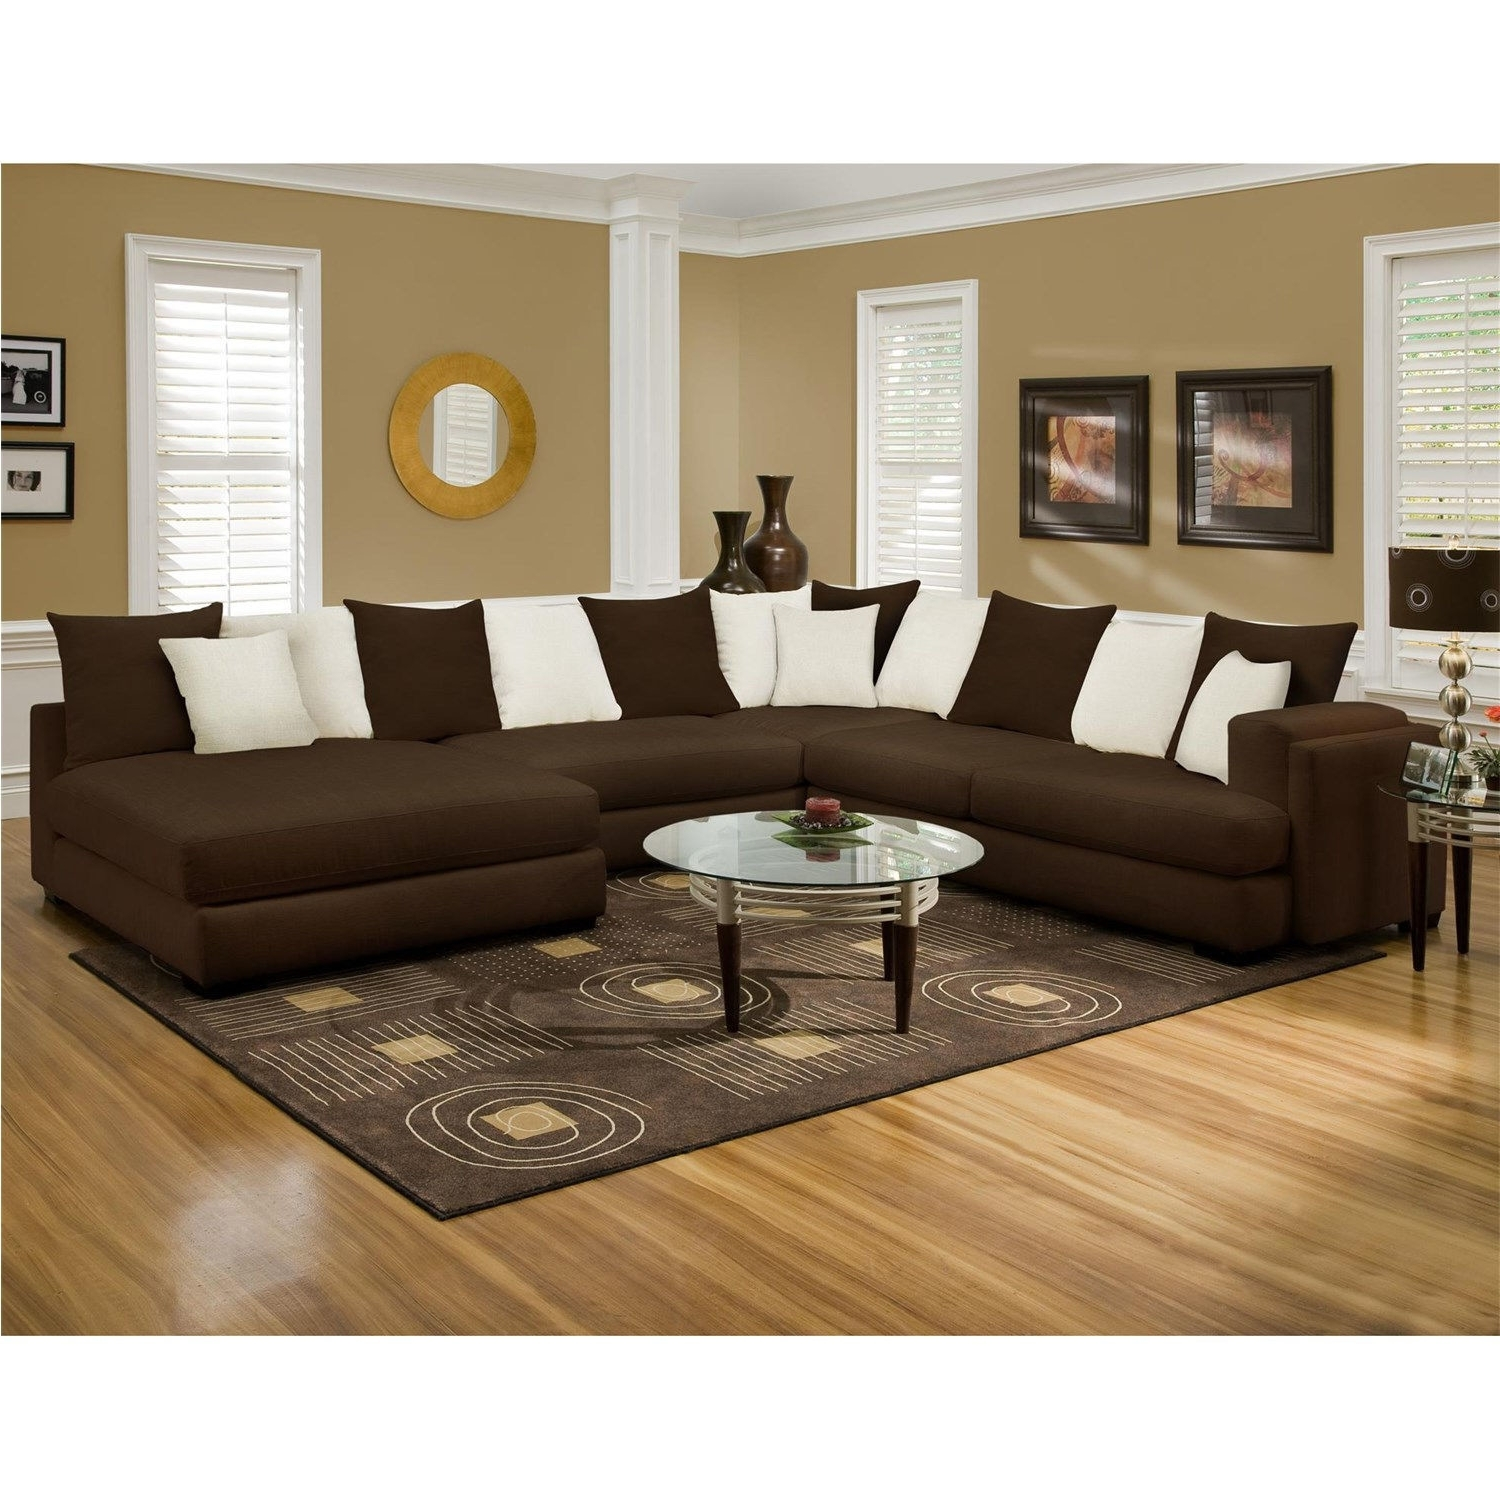 Most Current Sectional Sofas In Houston Tx With Regard To Lb Discount Furniture Sectional Sofas Houston Tx Bel Furniture (View 13 of 15)